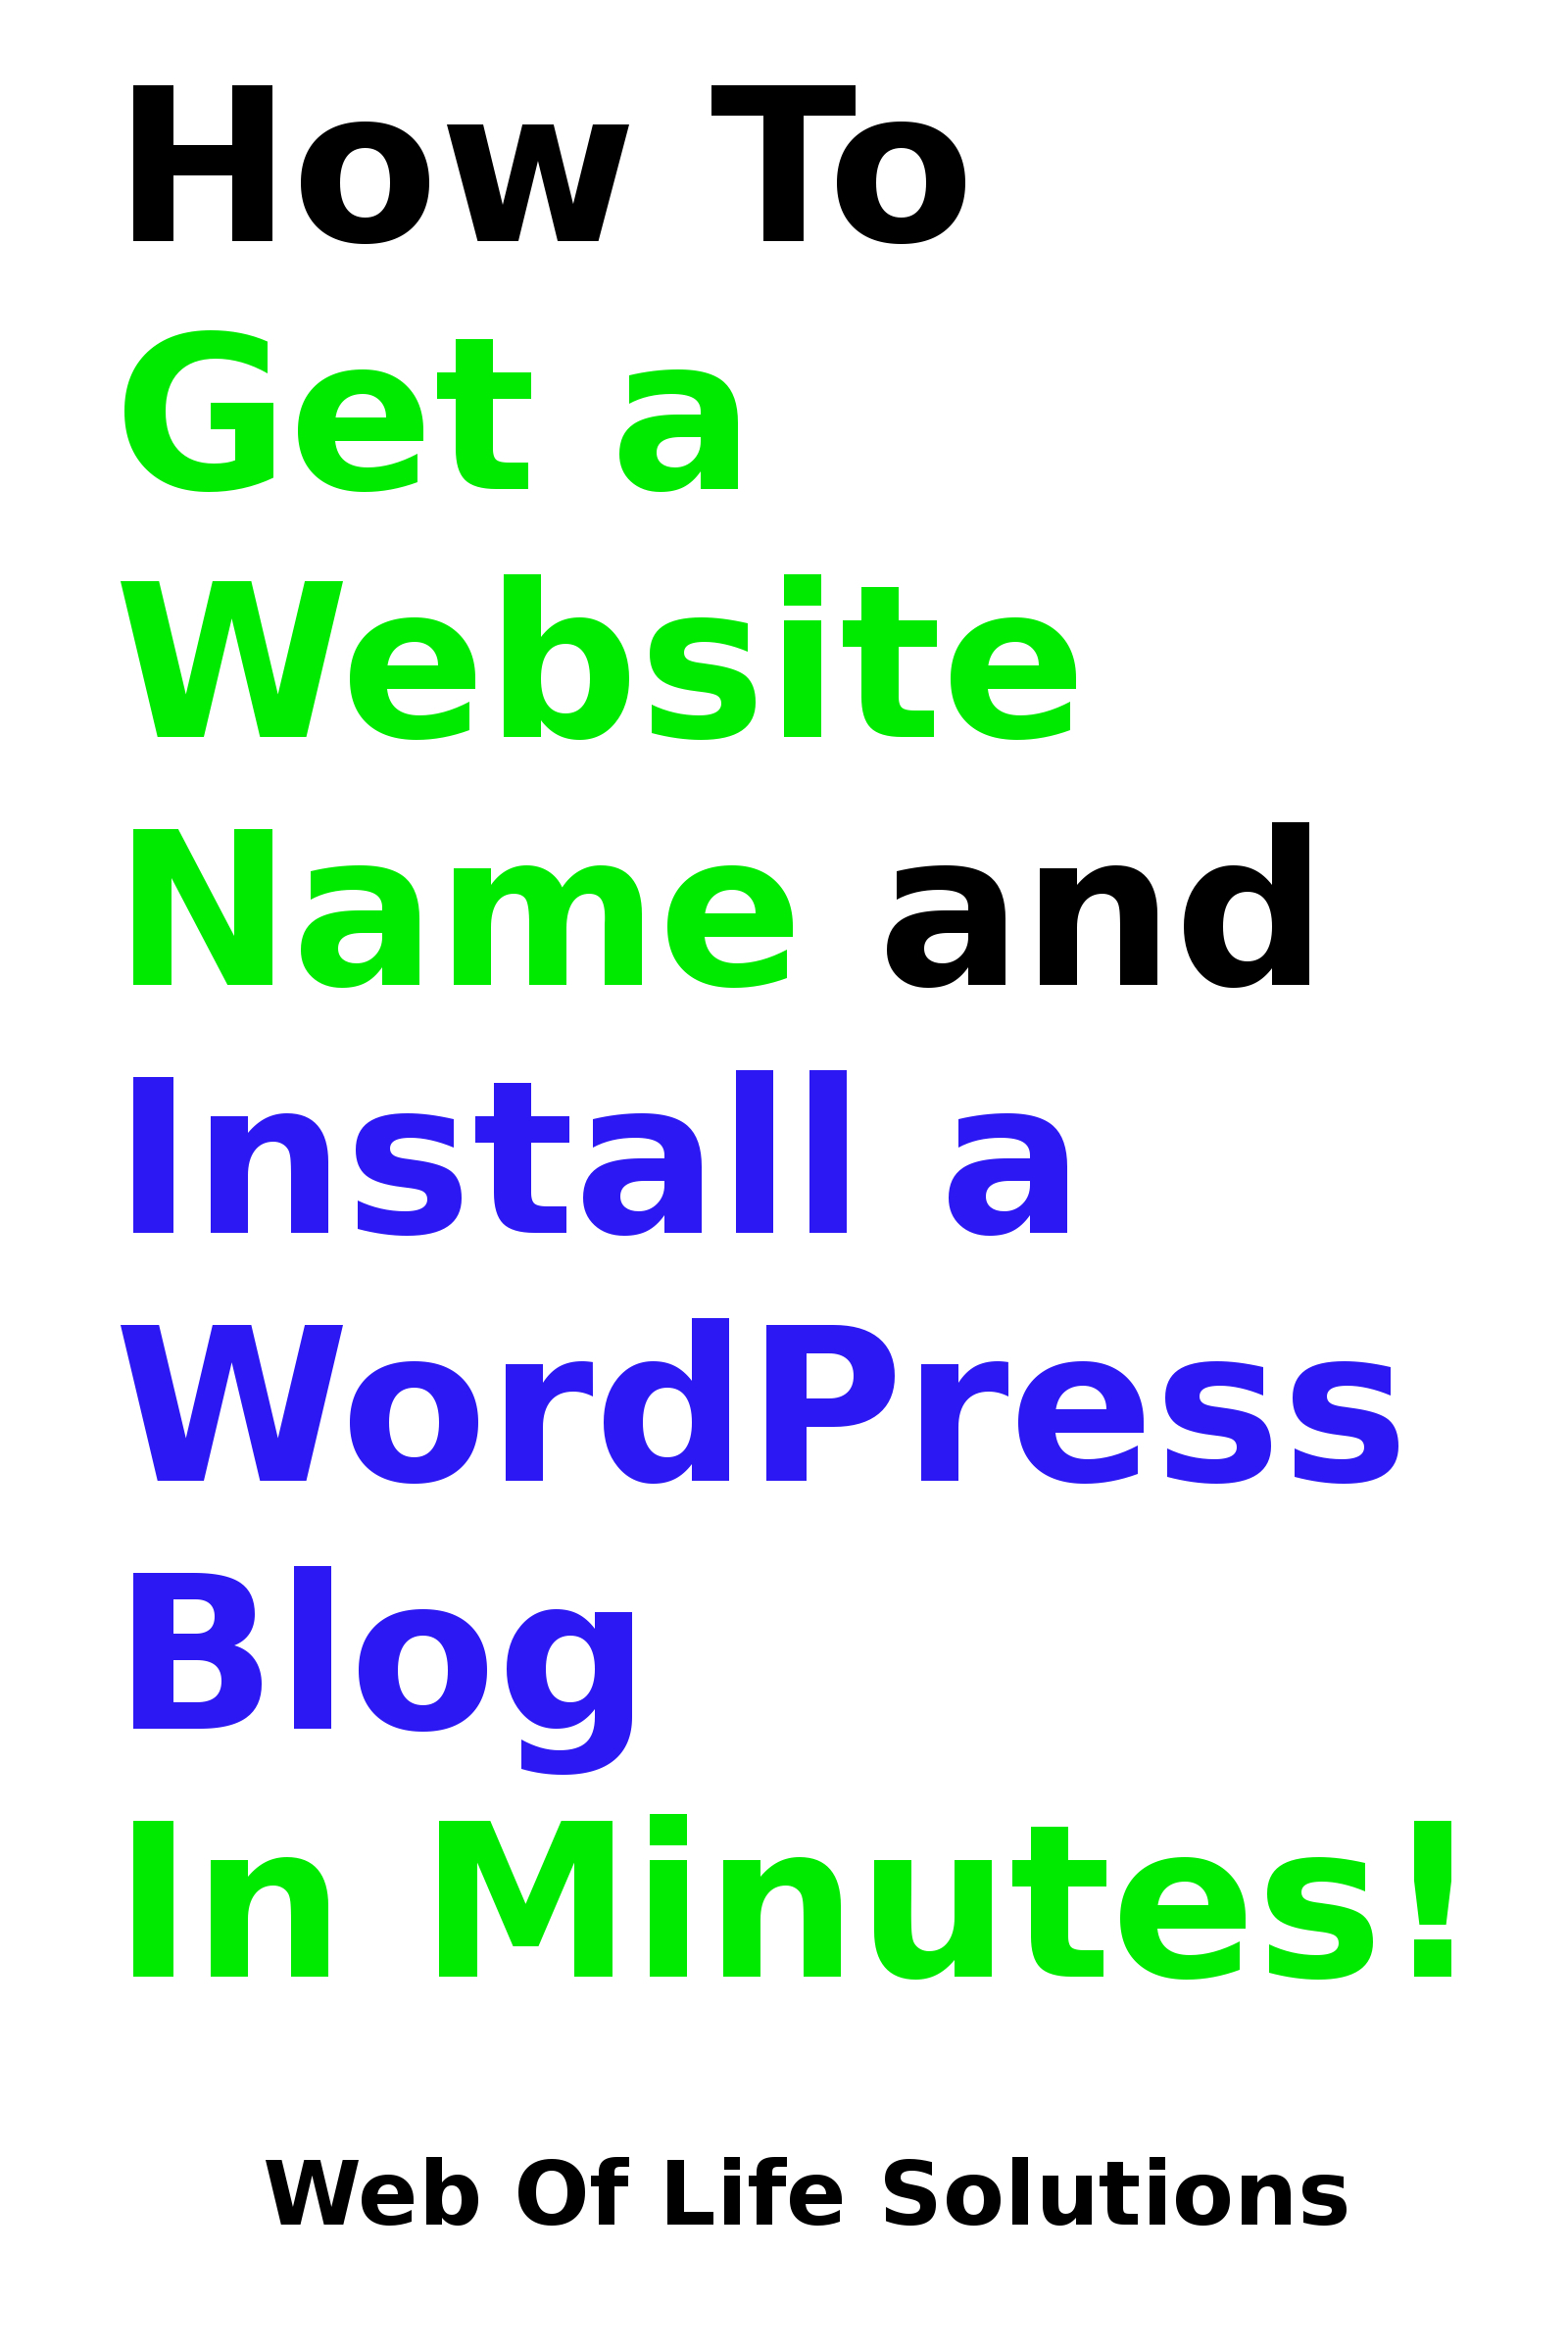 How To Get a Website Name and Install a WordPress Blog In Minutes! By: Web of Life Solutions